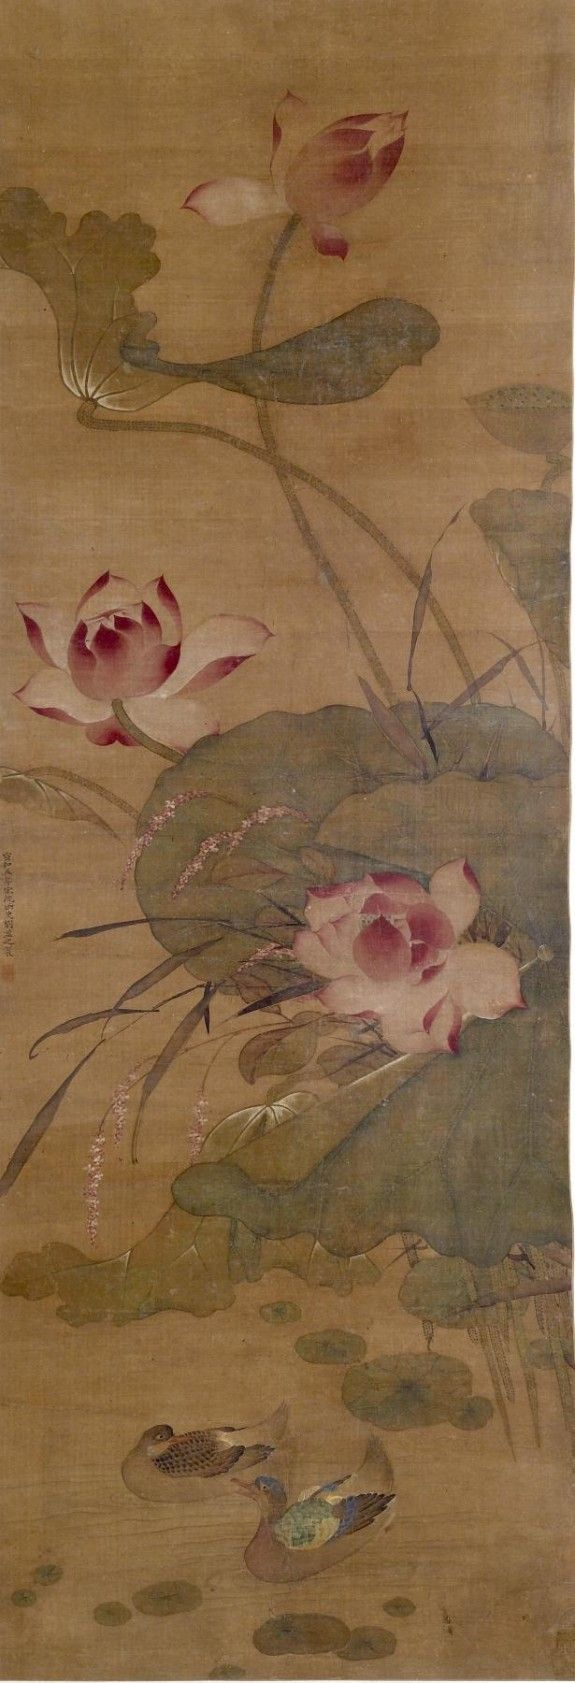 Best 25 lotus pond ideas on pinterest ducks in a lotus pond chinese paintingdrawing walters museum dhlflorist Choice Image